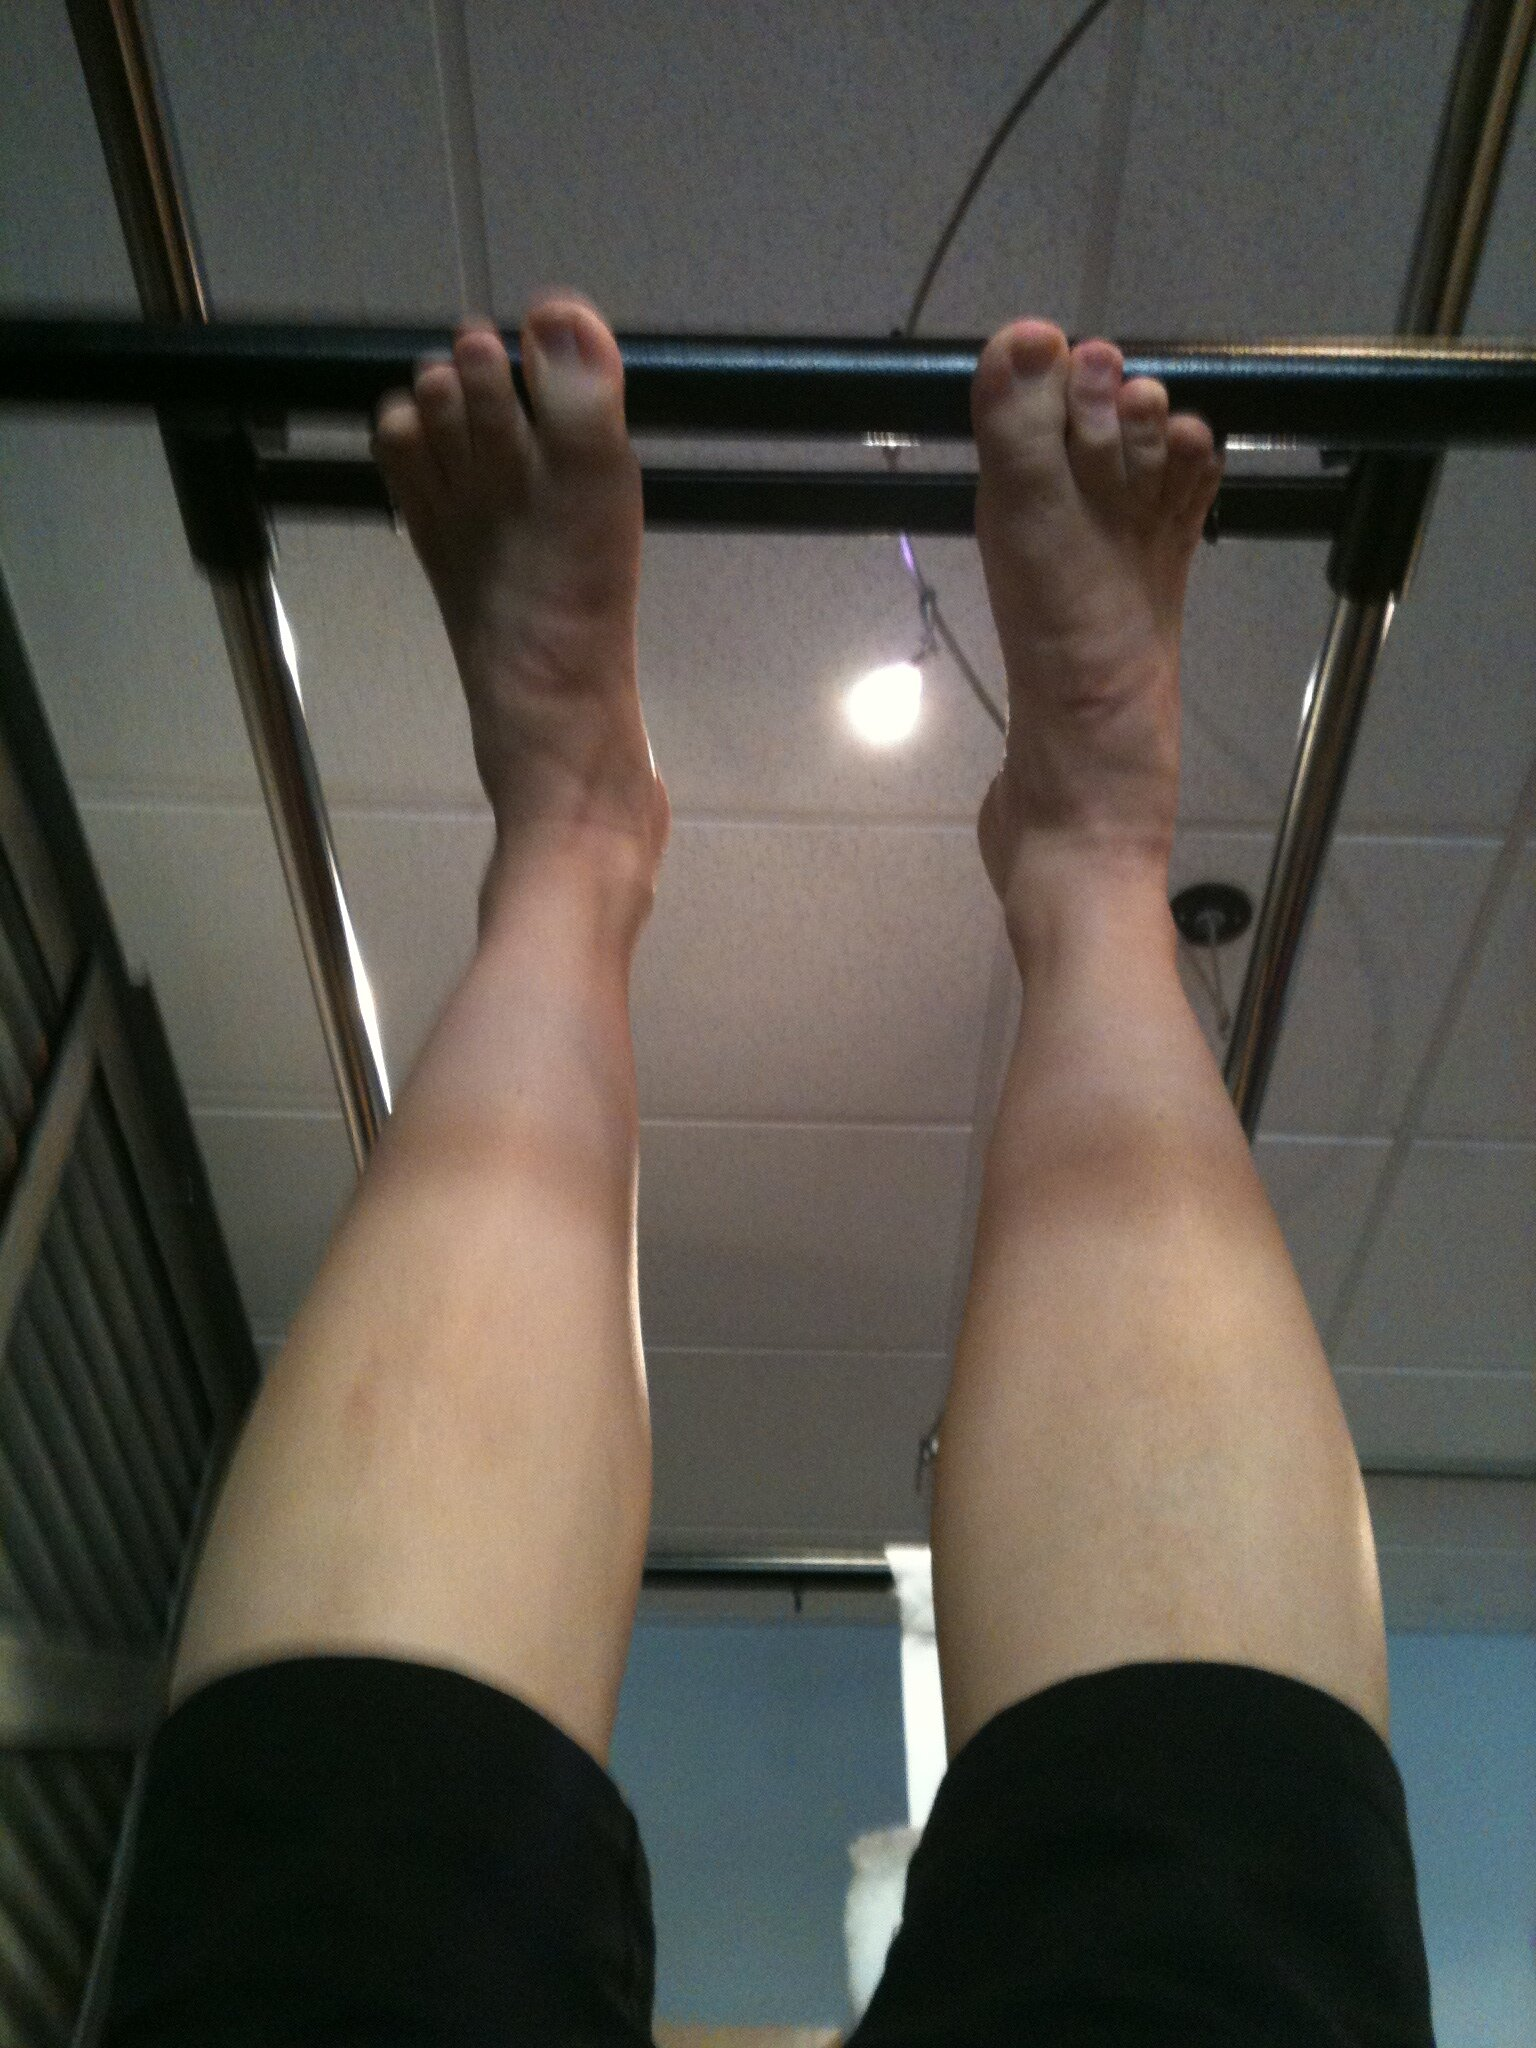 Right ankle misalignment